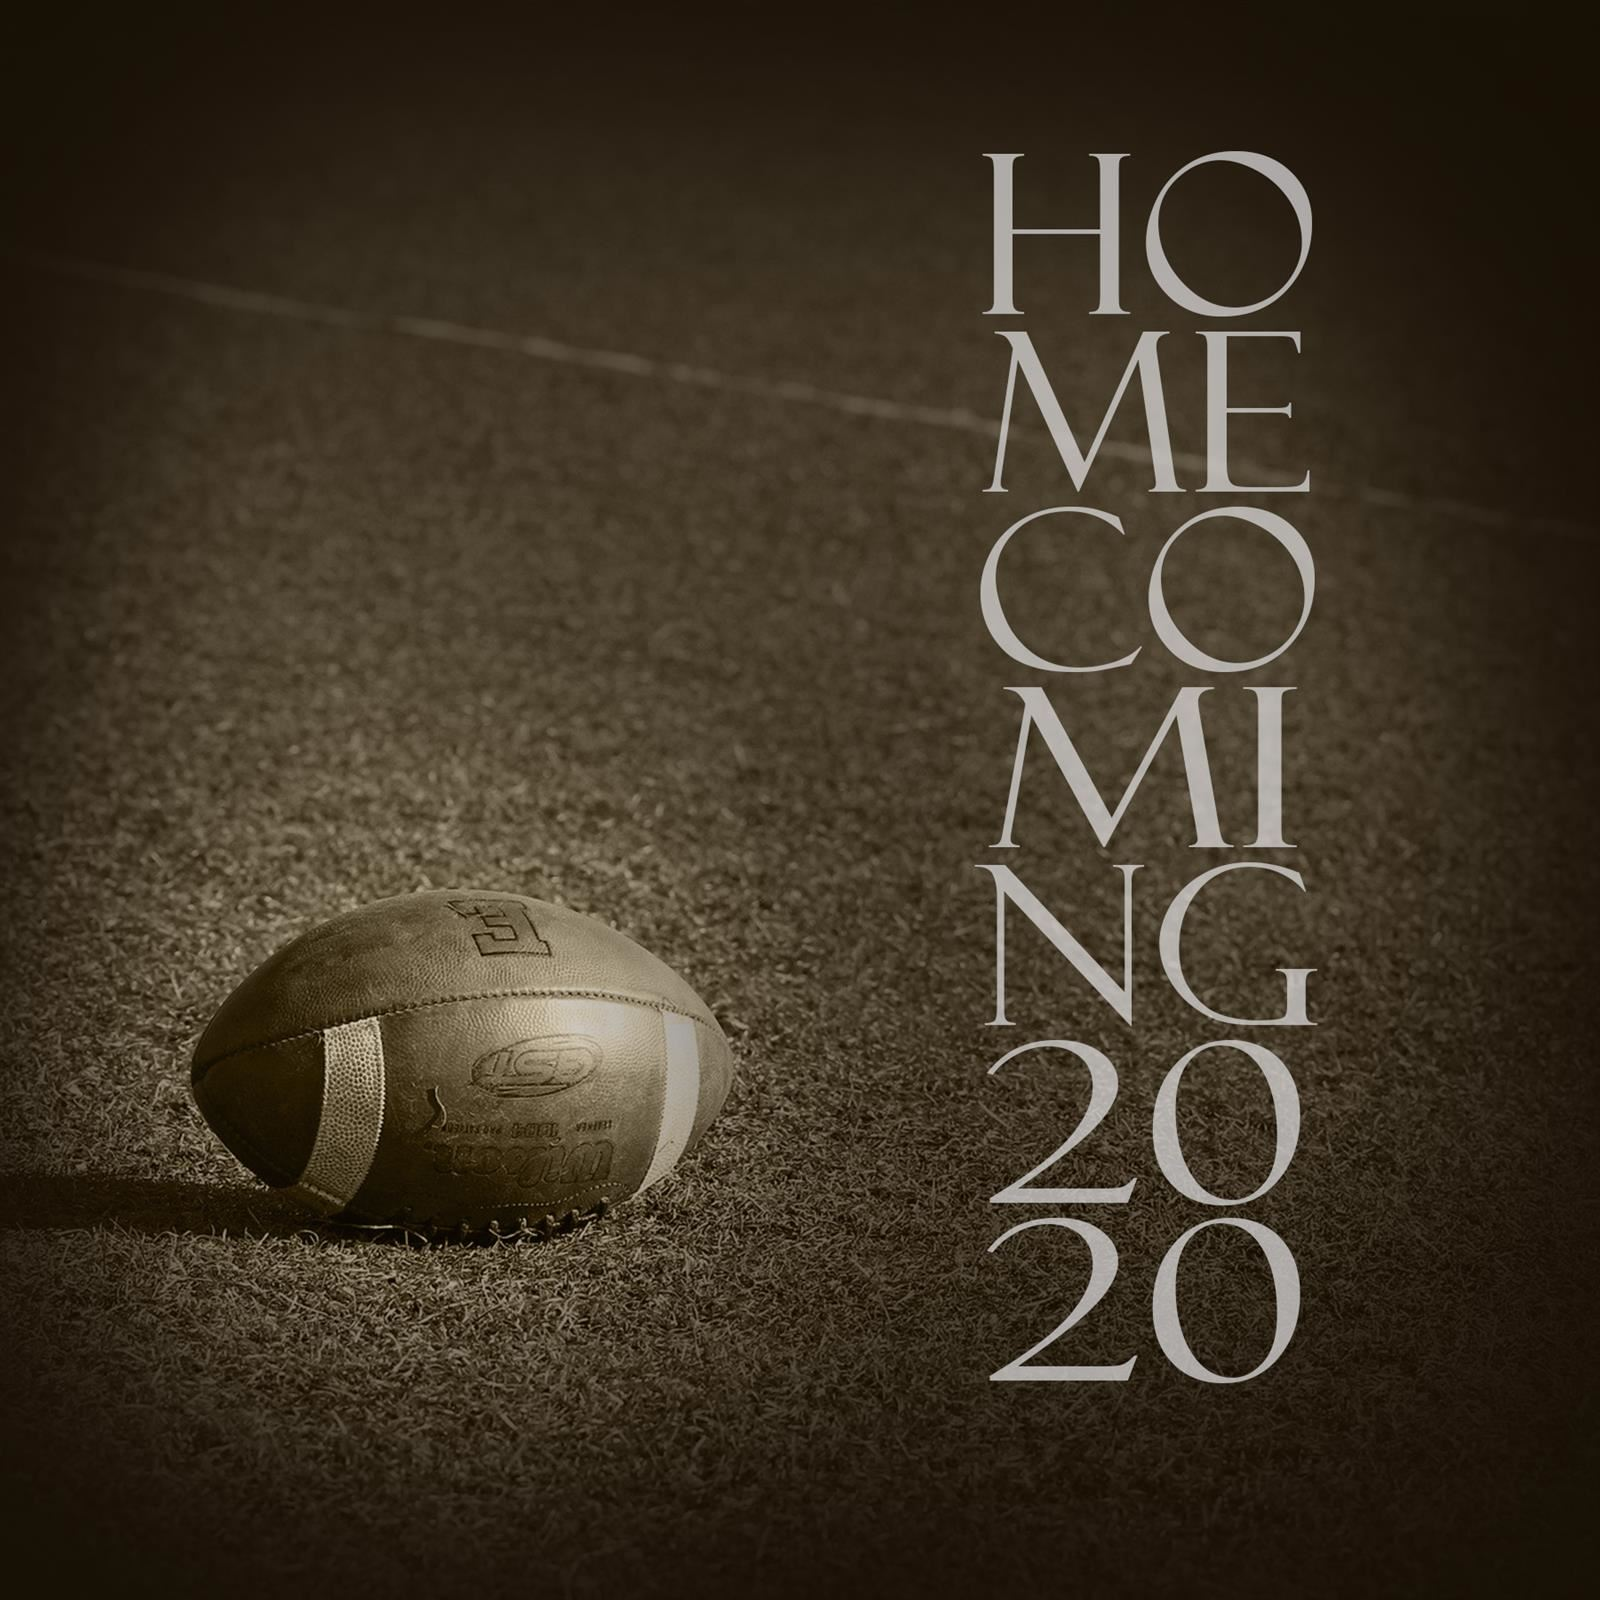 Sepia tone football on field Text: Homecoming 2020